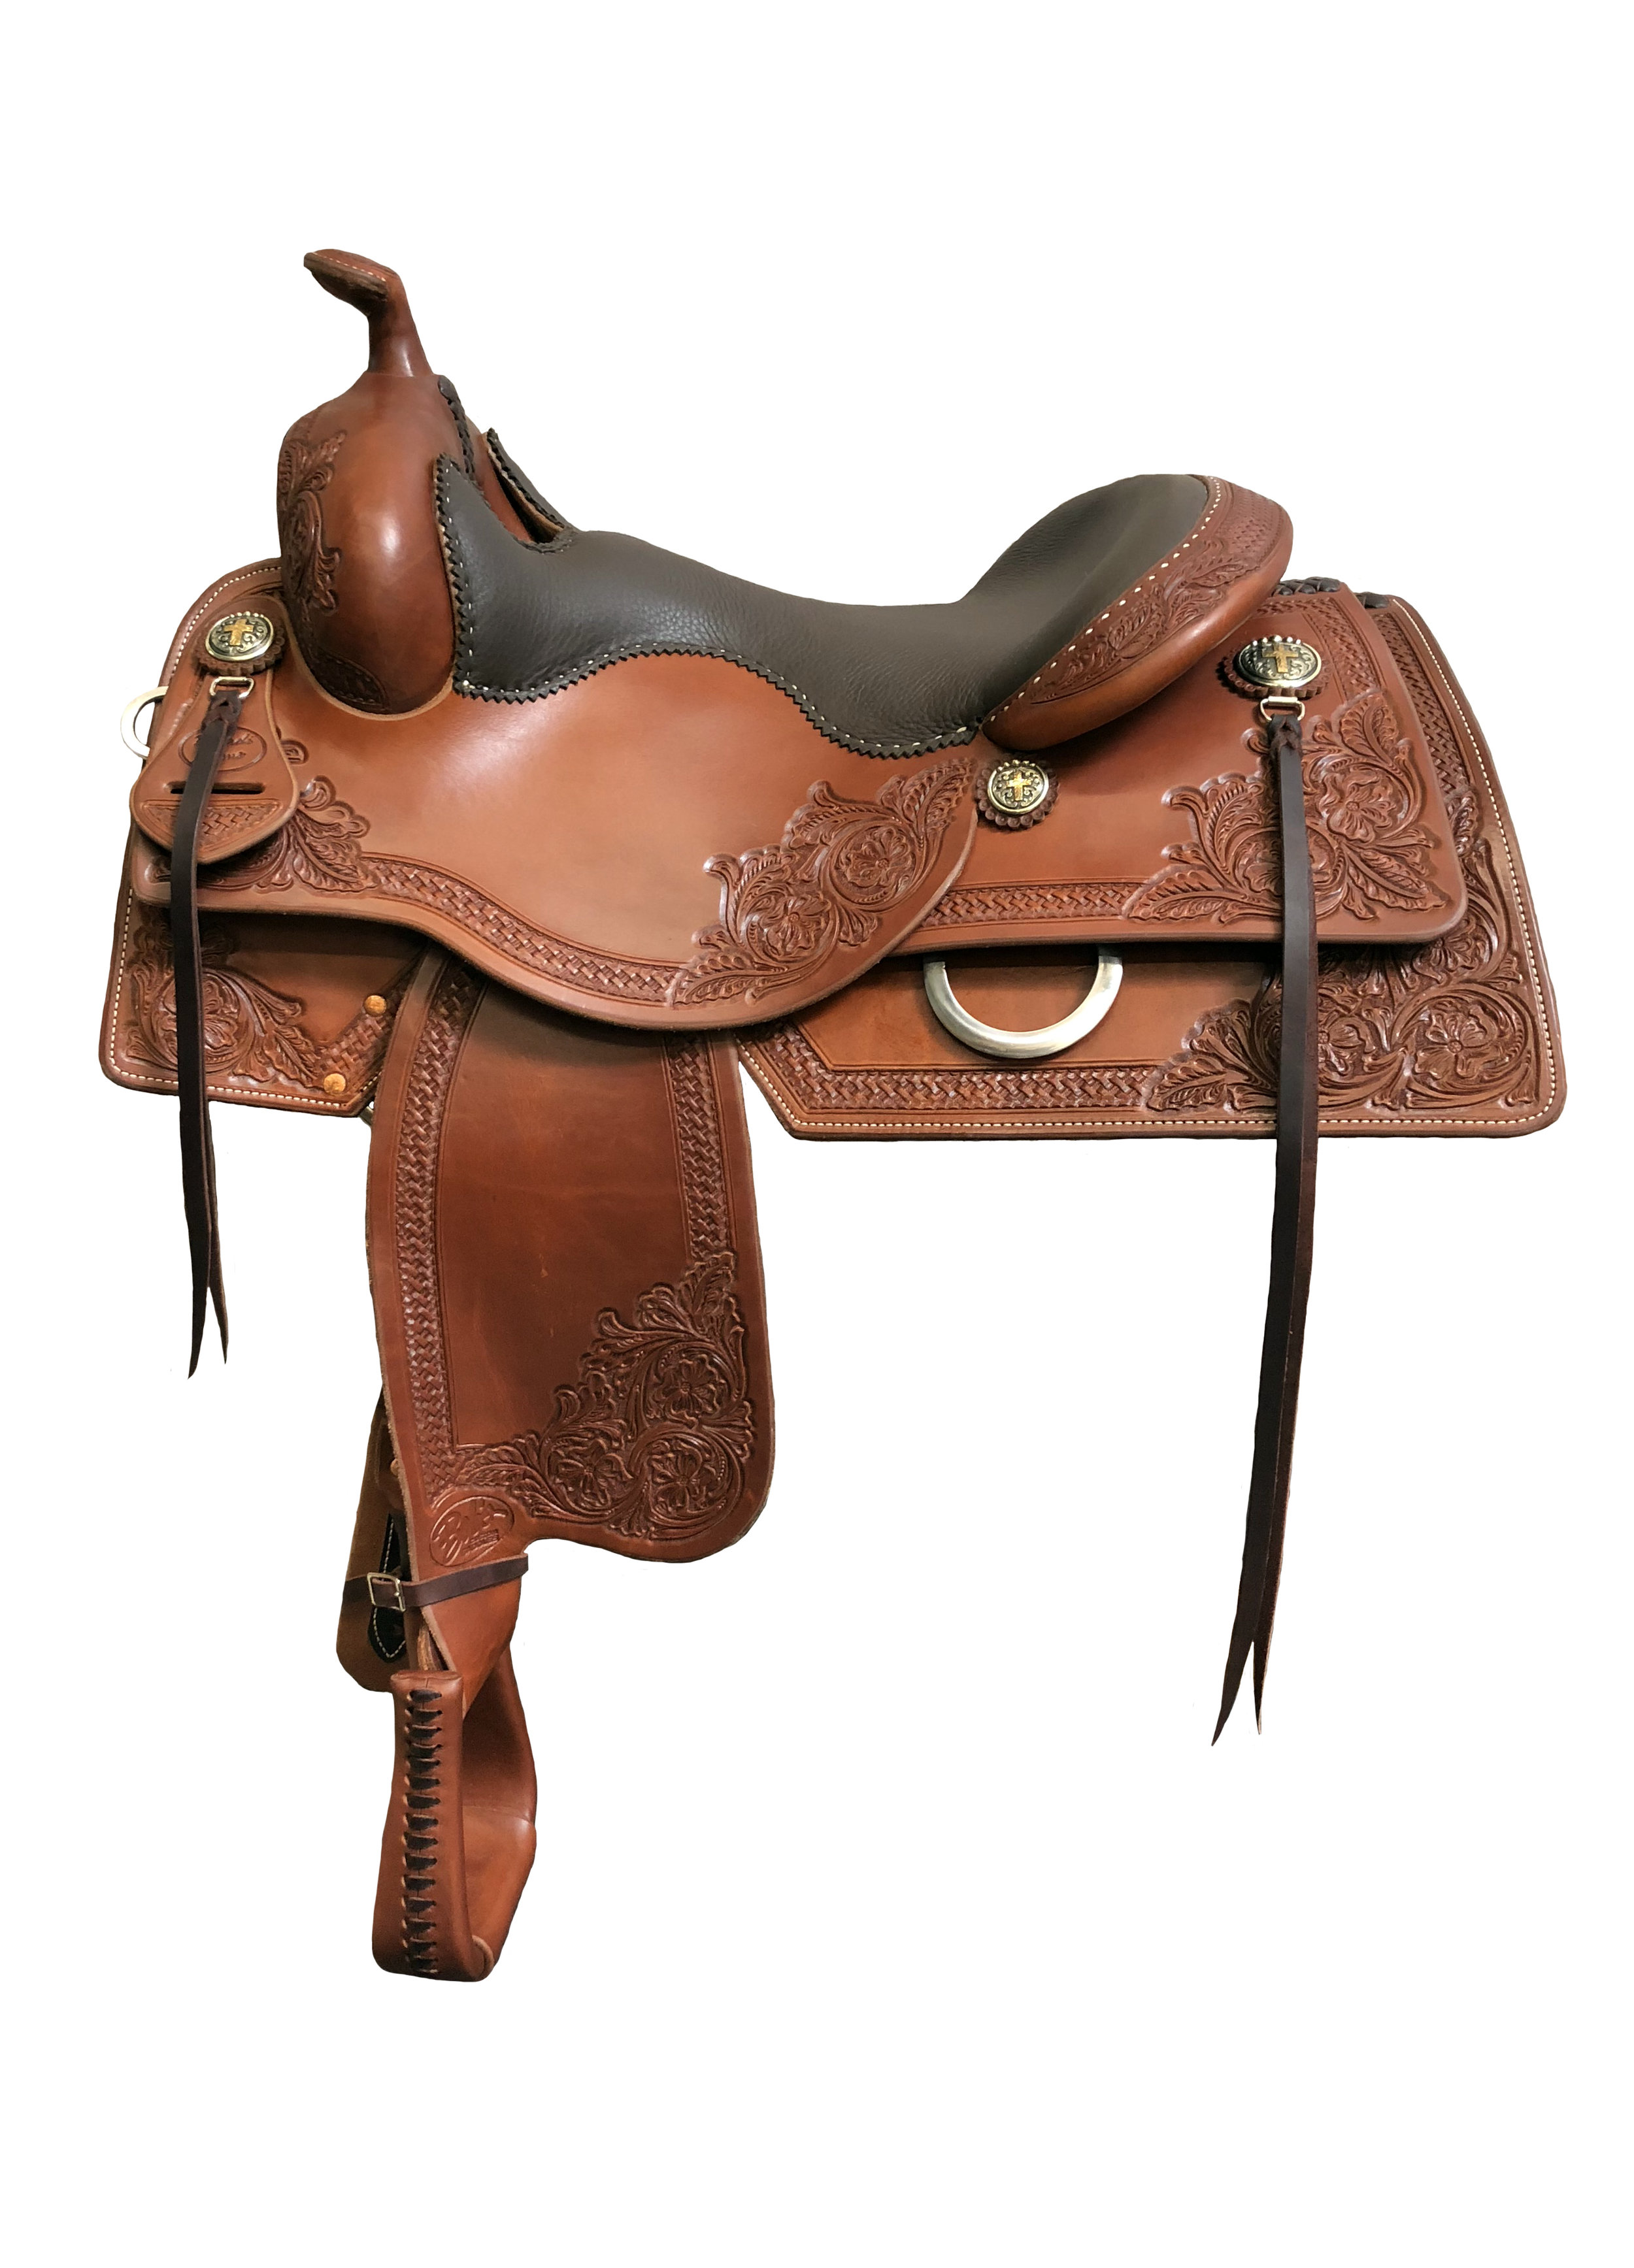 Custom designed by Brandi Lyons for maximum rider comfort and contact to your horse.